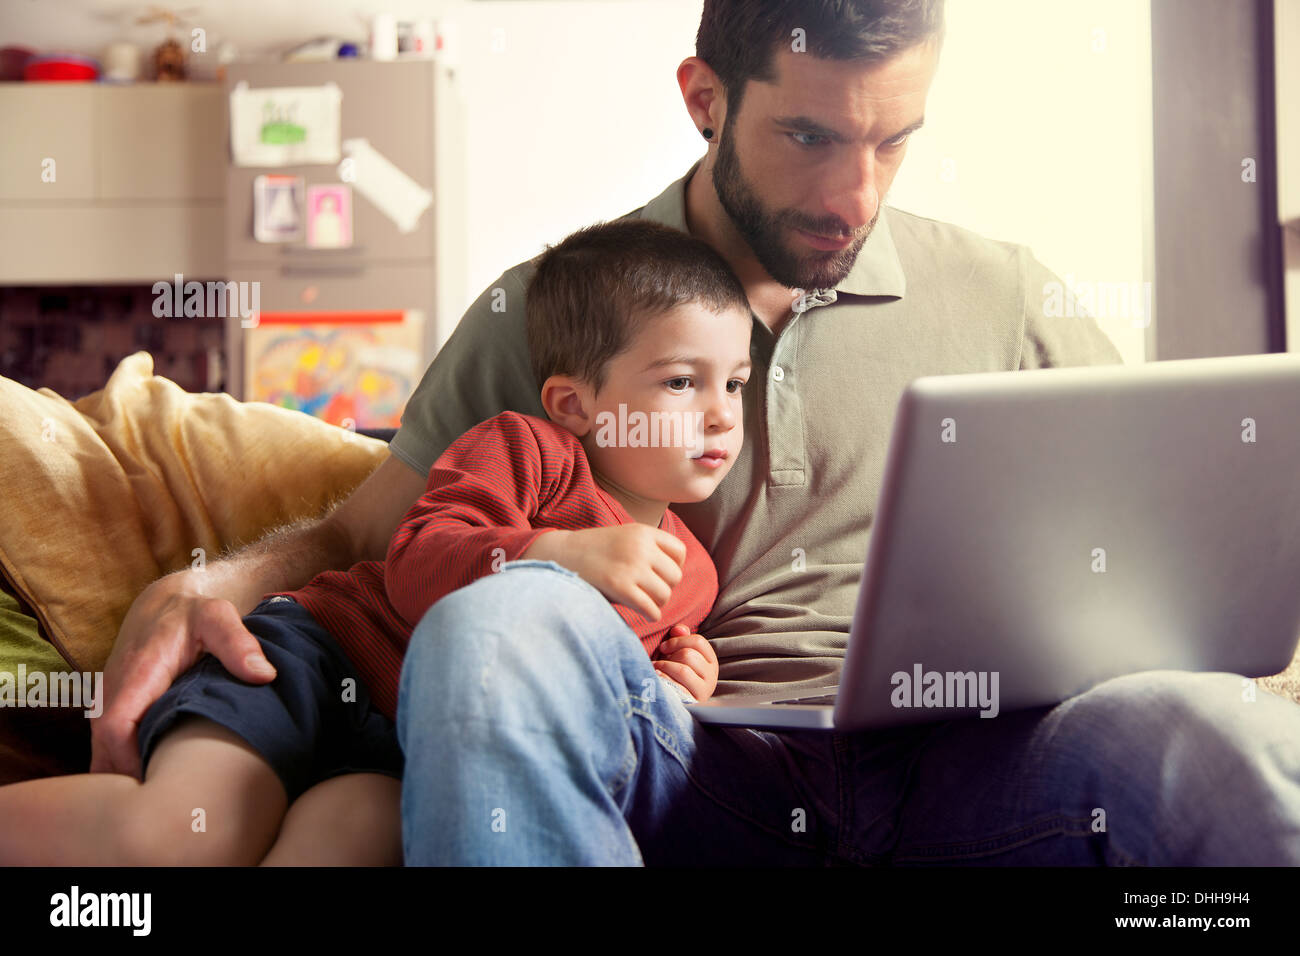 Father and son using laptop - Stock Image